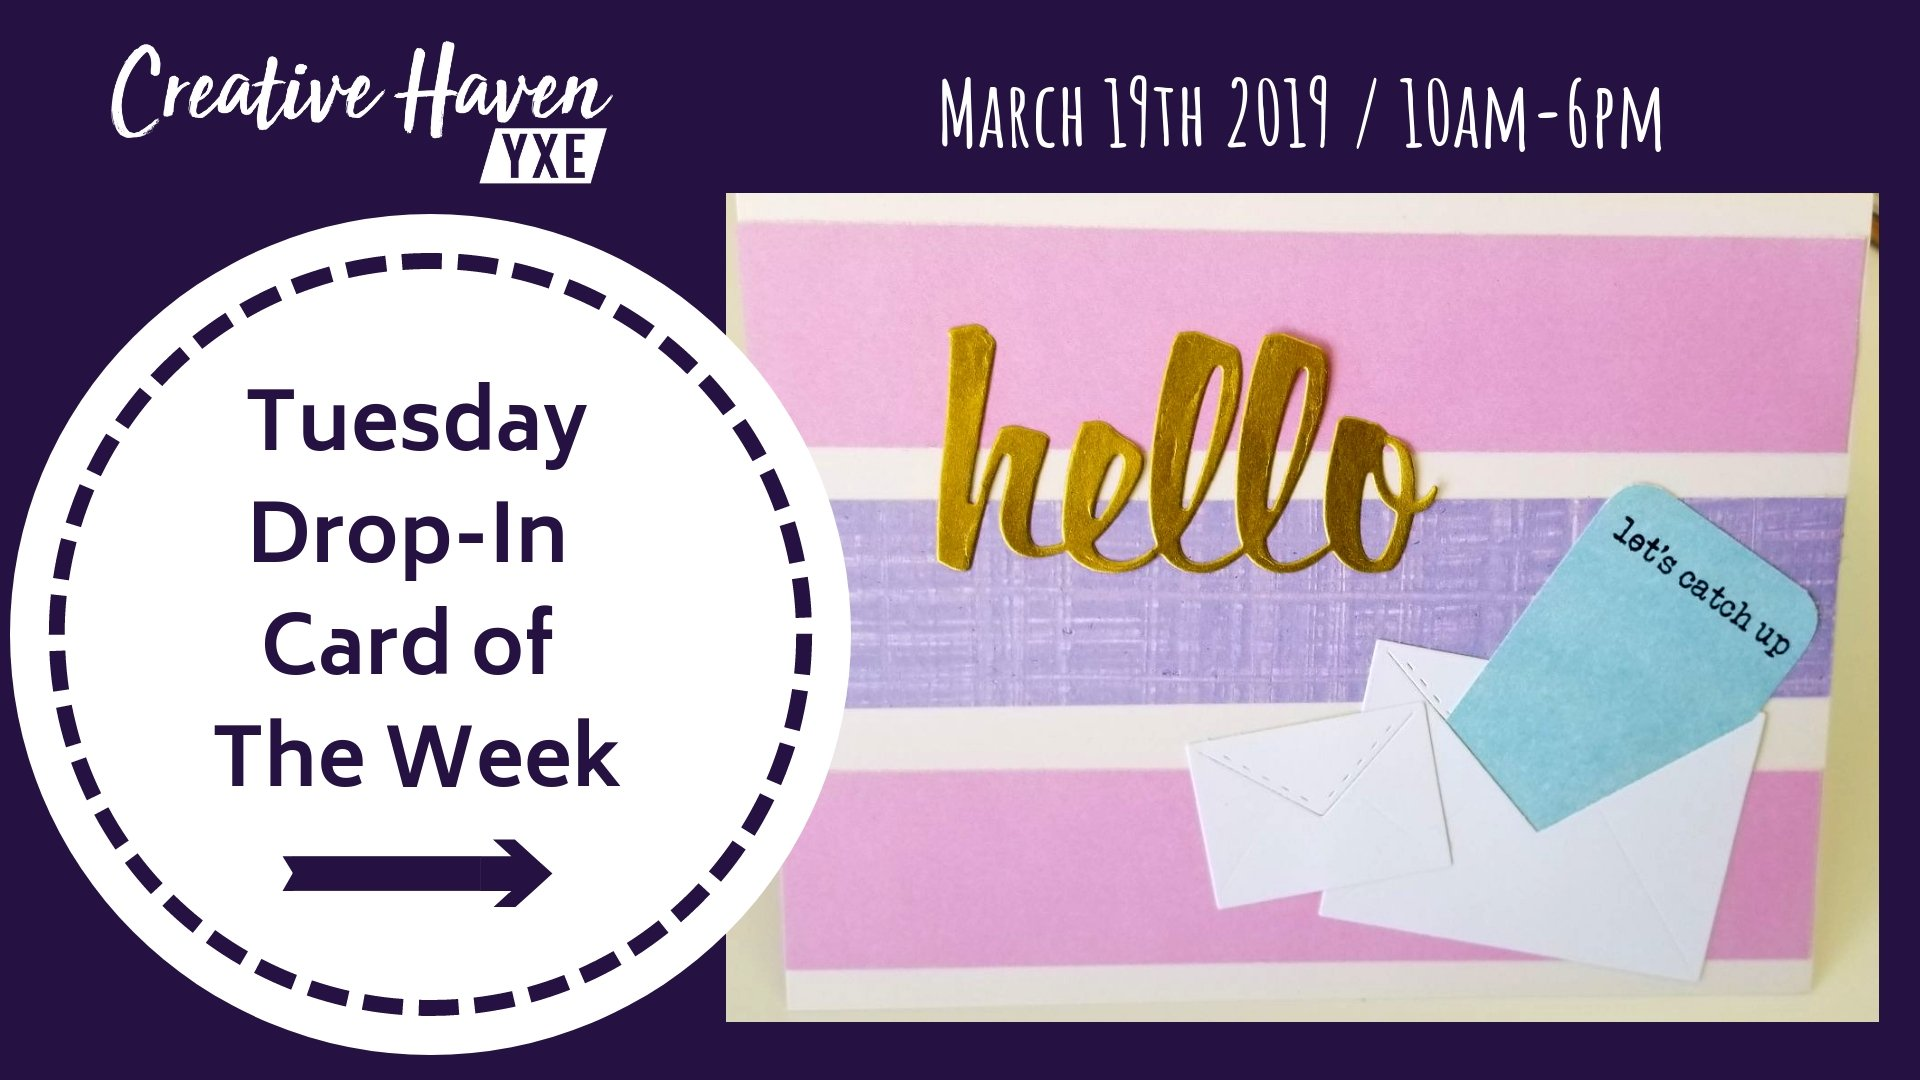 Tuesday Card of the Week Drop In Creative Haven YXE